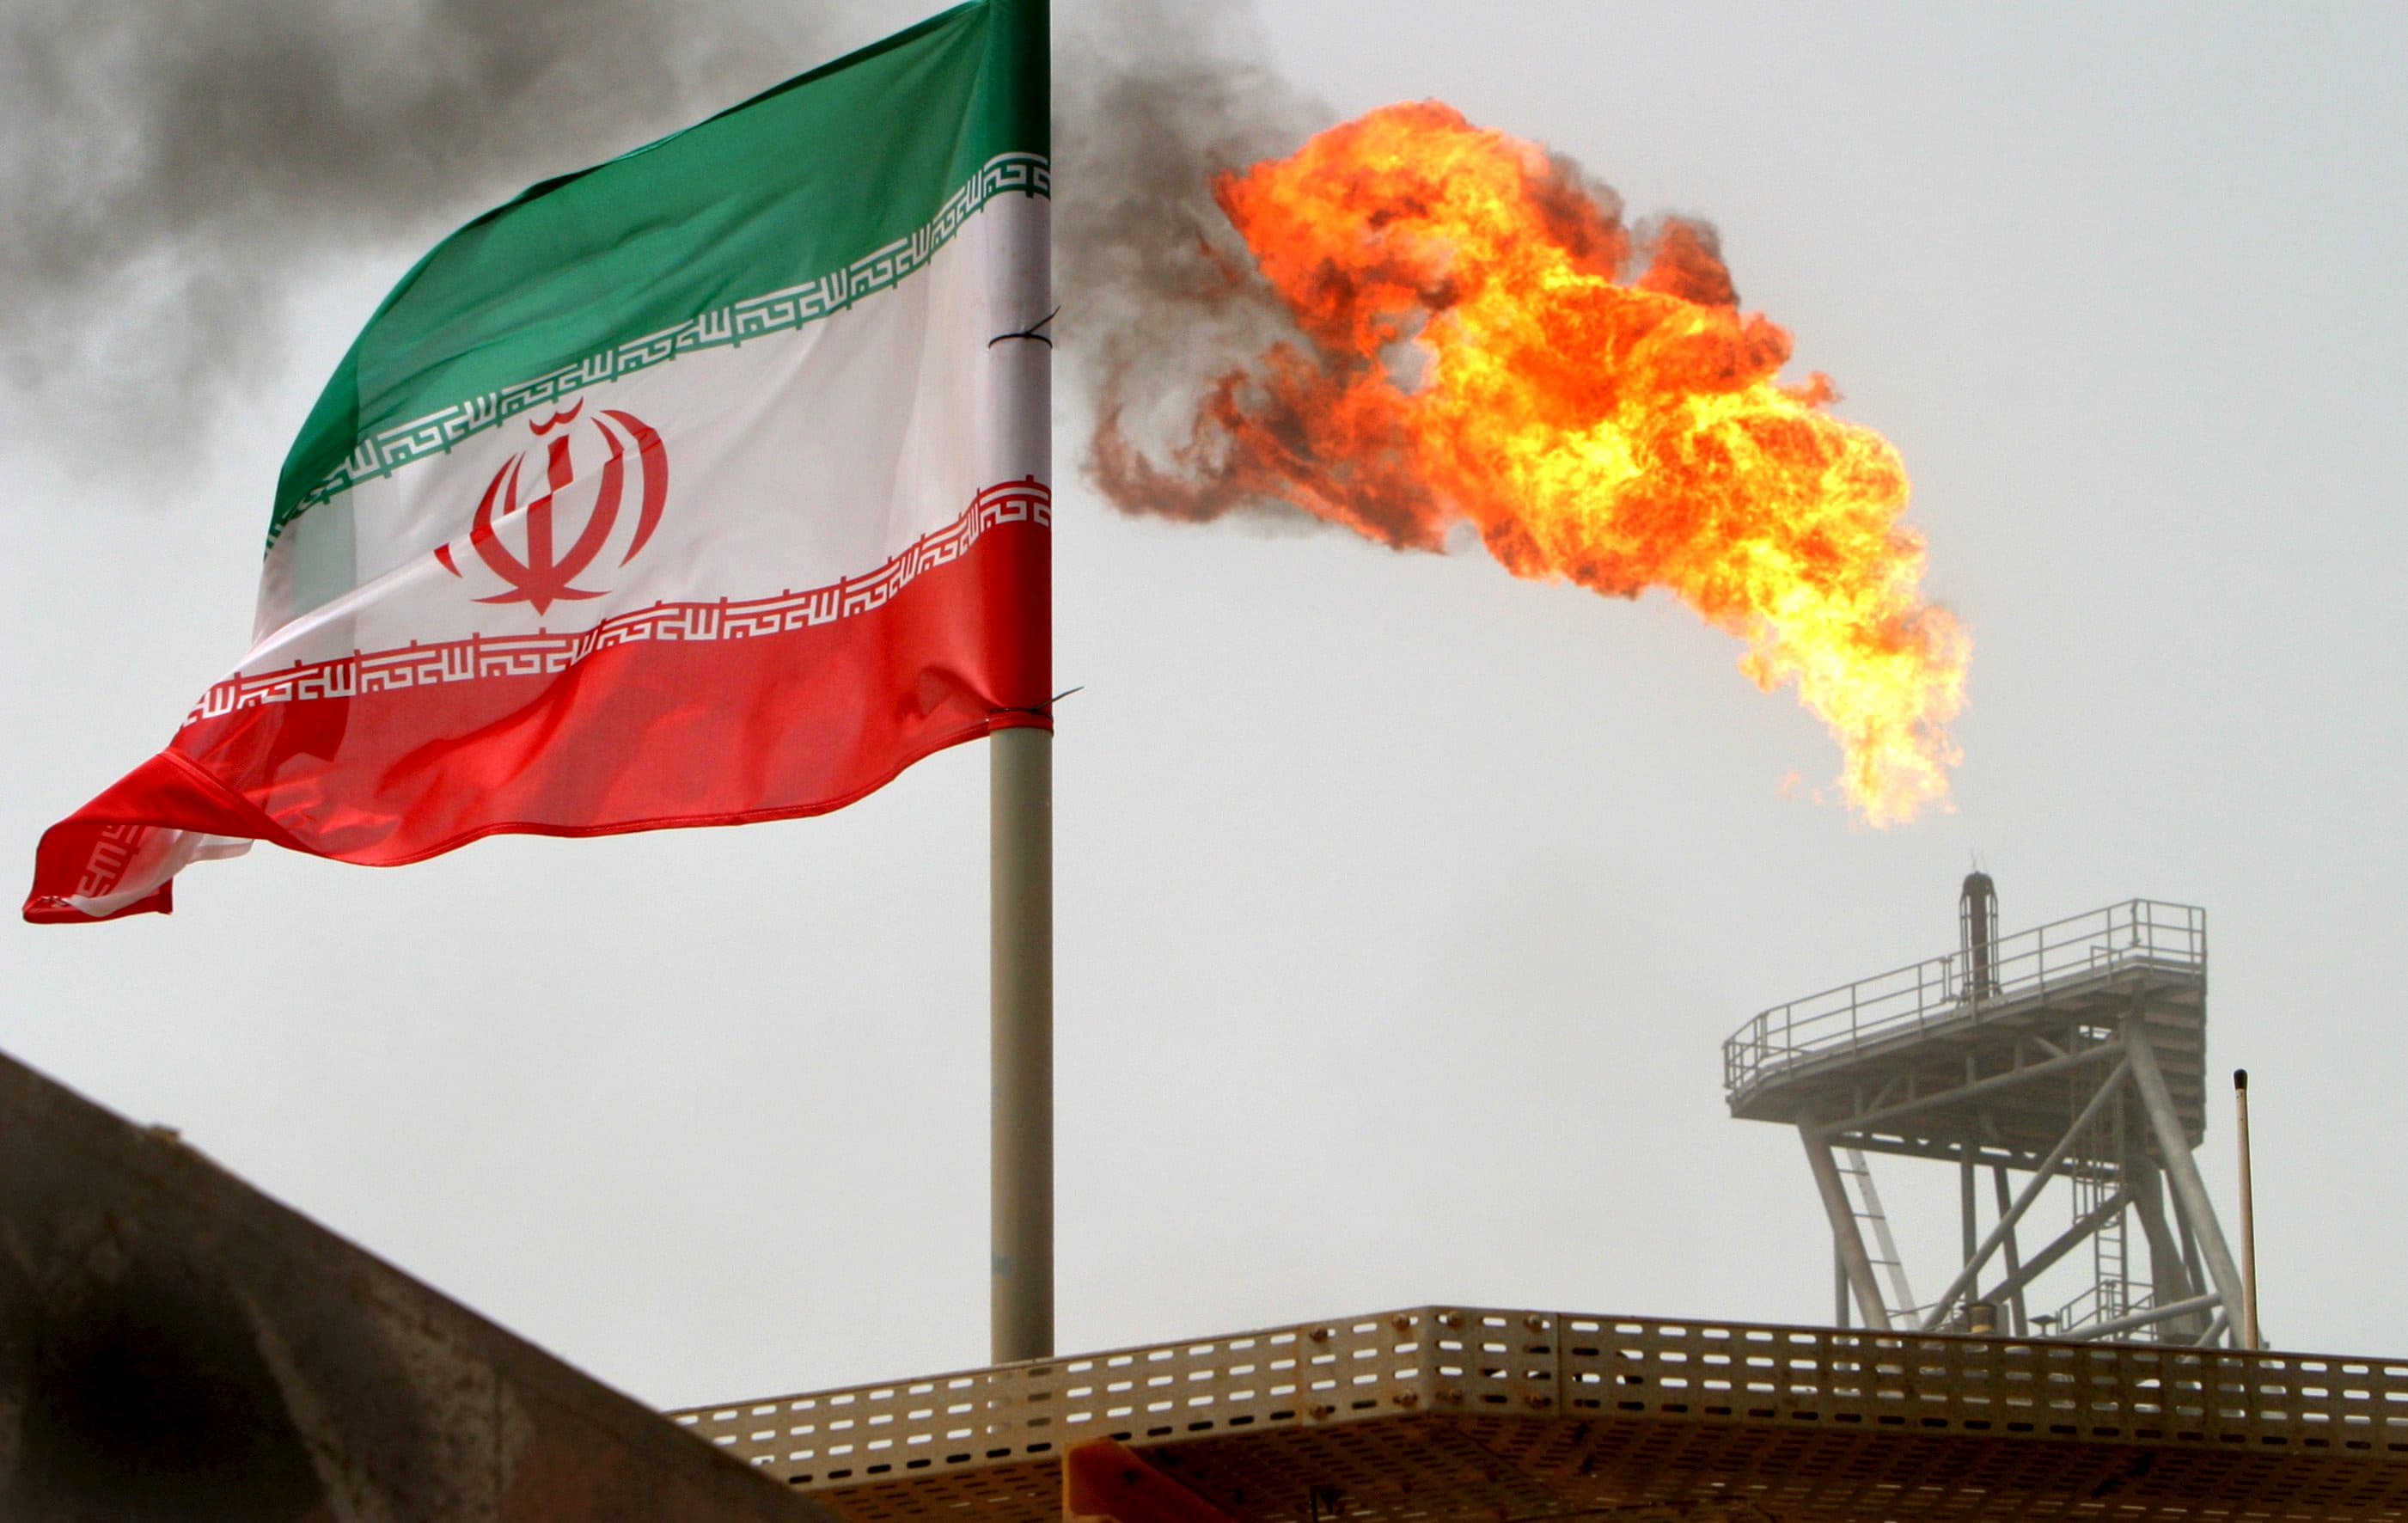 US launches plan to choke off Iran's energy exports, casting uncertainty over oil prices